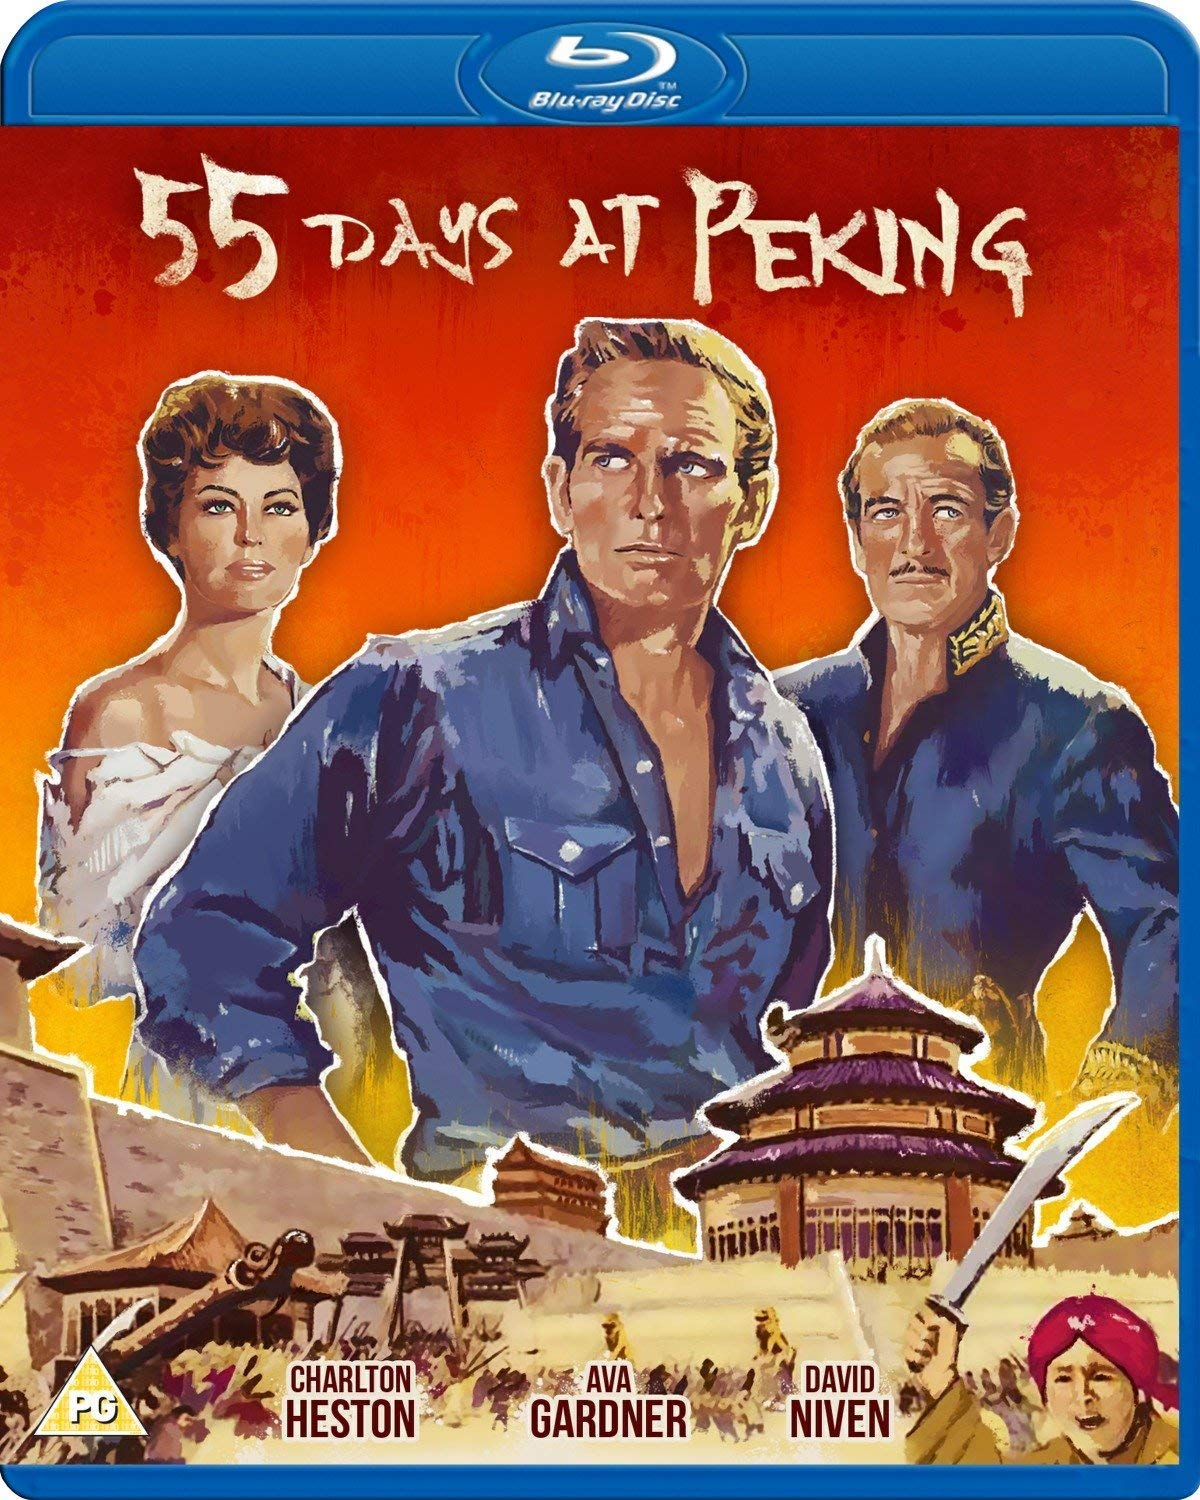 55 Days at Peking (Blu-ray)